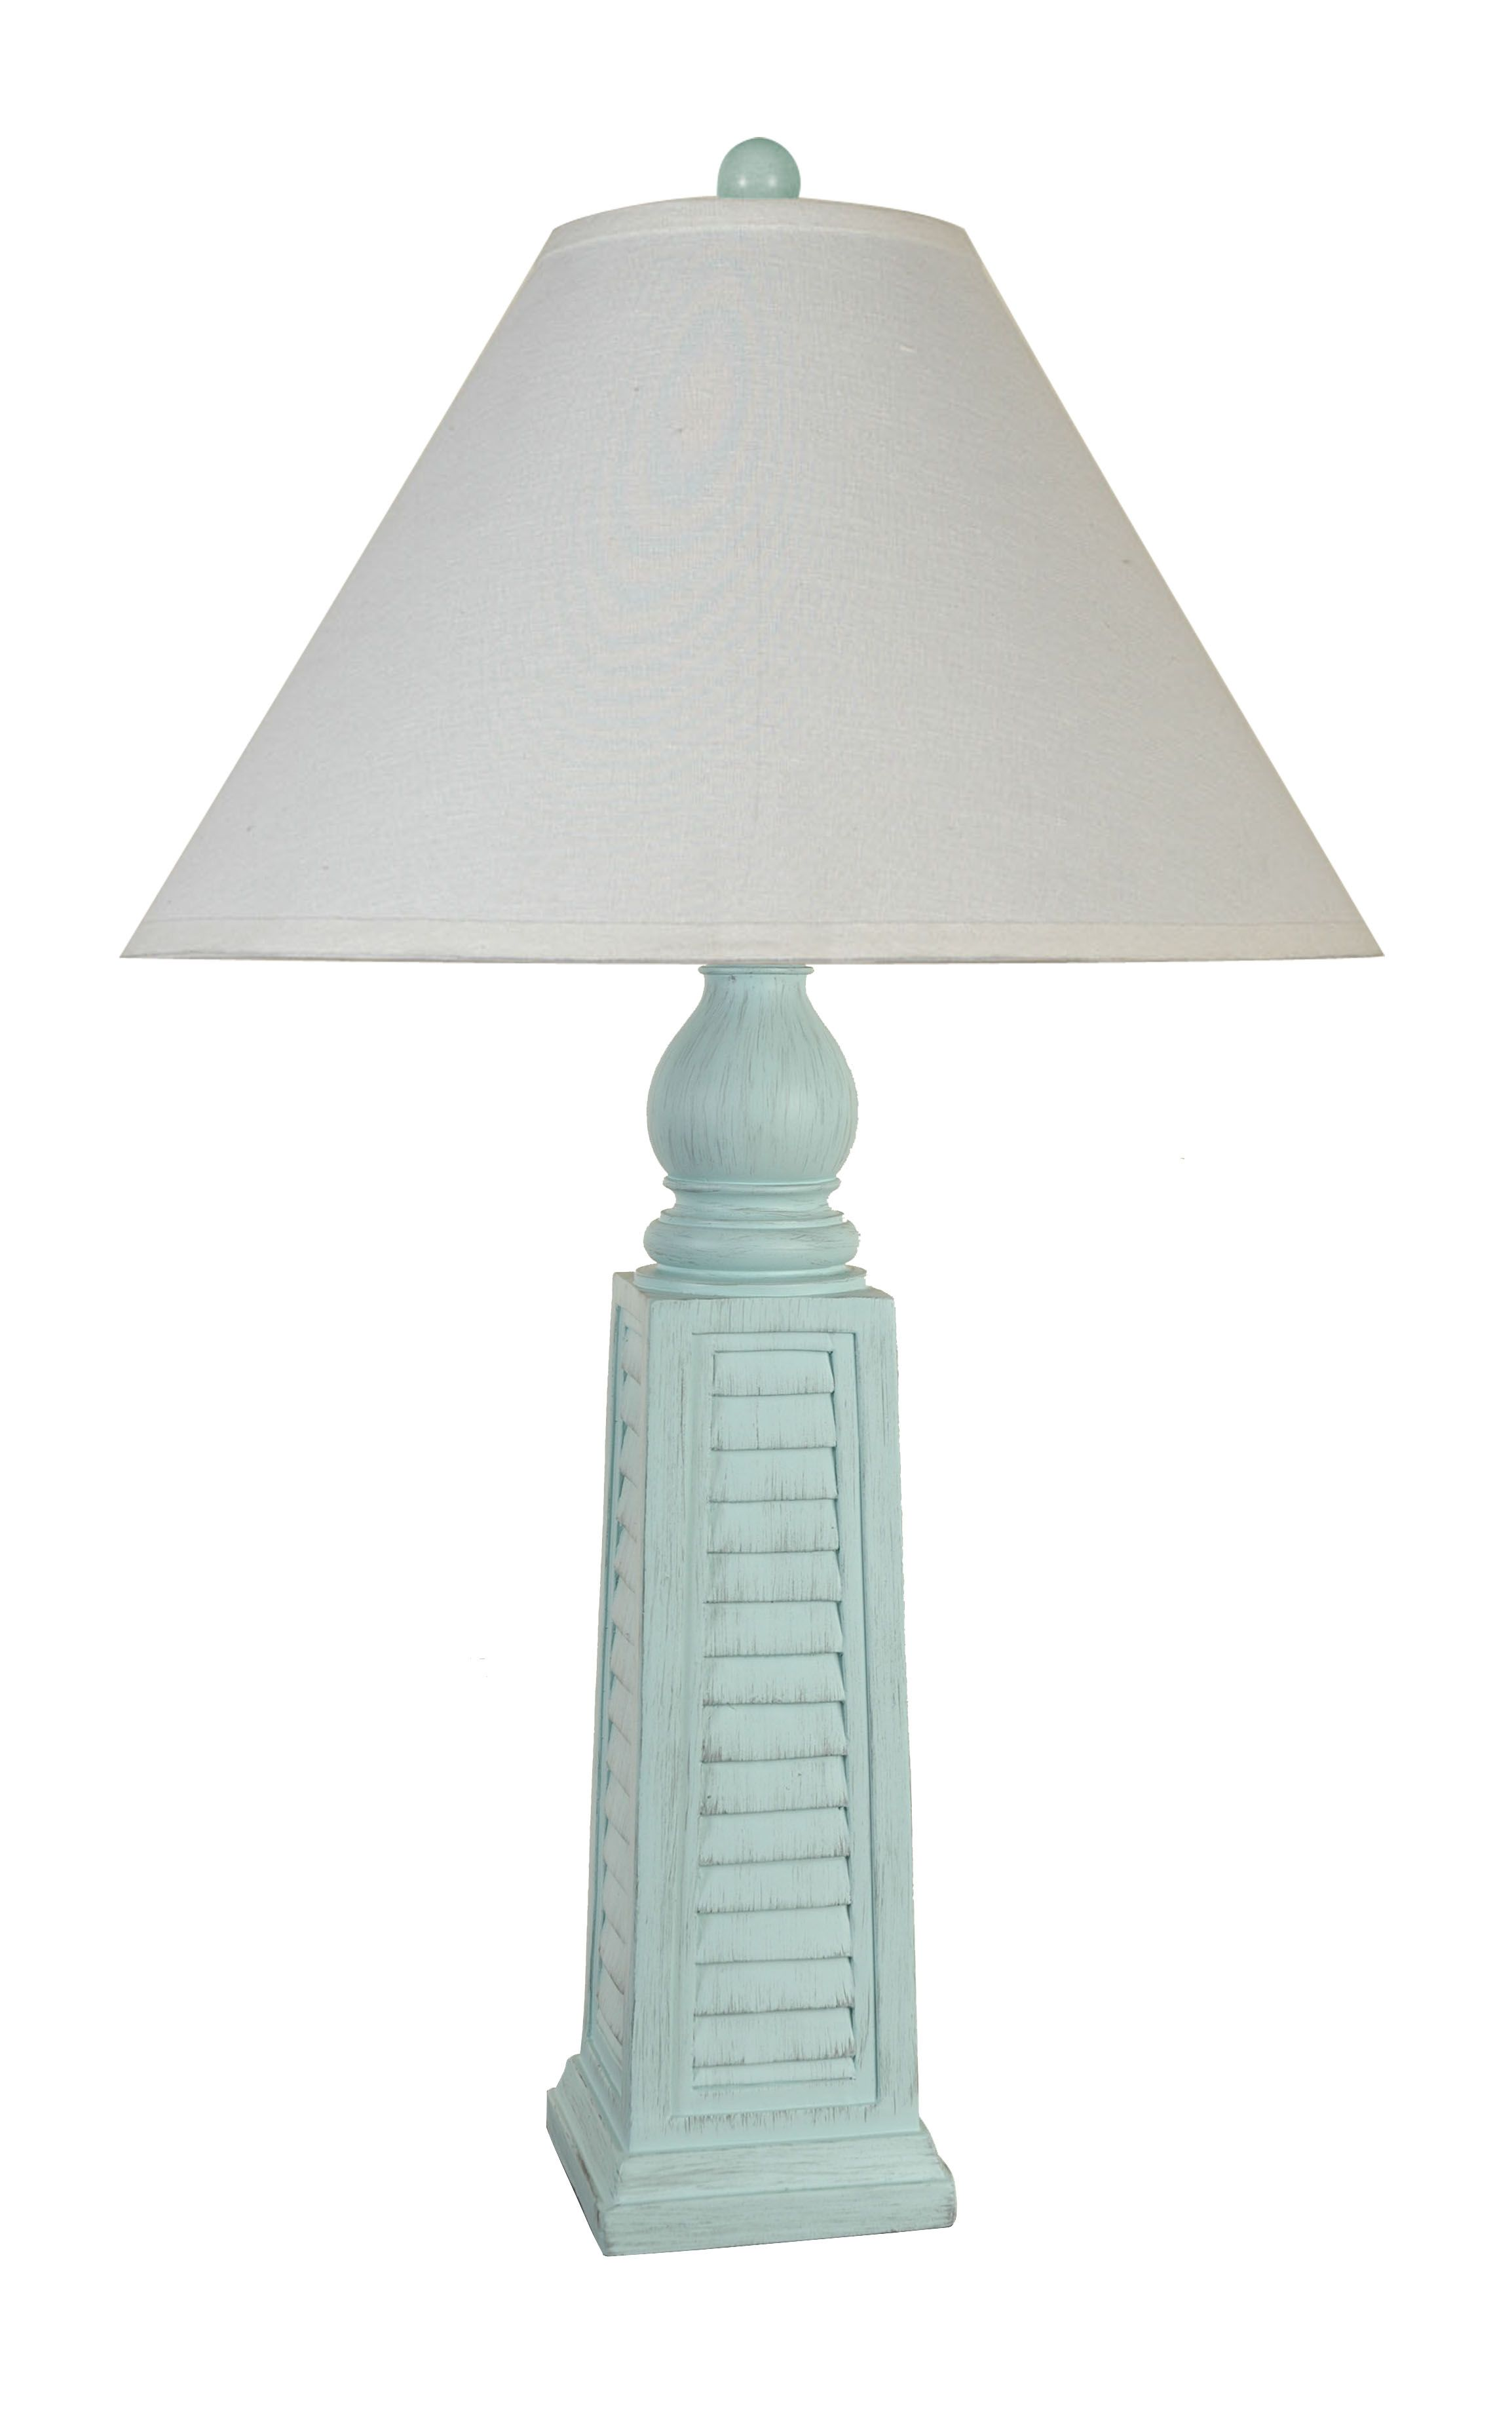 Lps 047 polyresin shutter table lamp by lamps per se coastal lps 047 polyresin shutter table lamp by lamps per se geotapseo Gallery